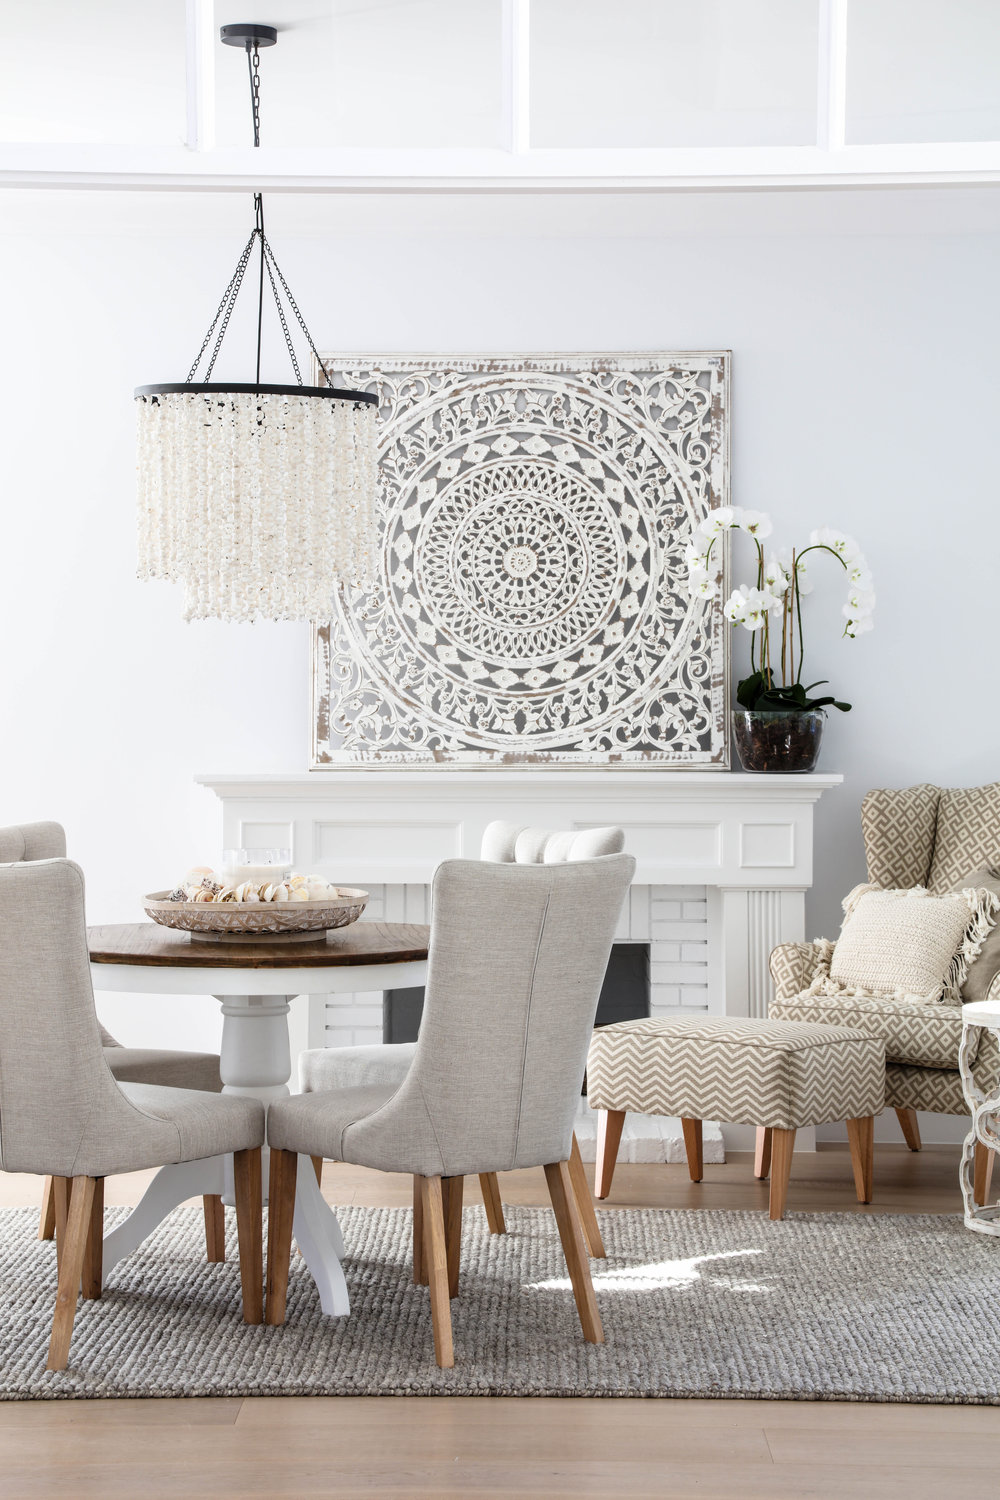 Pictured: Darby table, Xavier dining chair, Kingston occassional chair and ottoman, Uzma wall art.